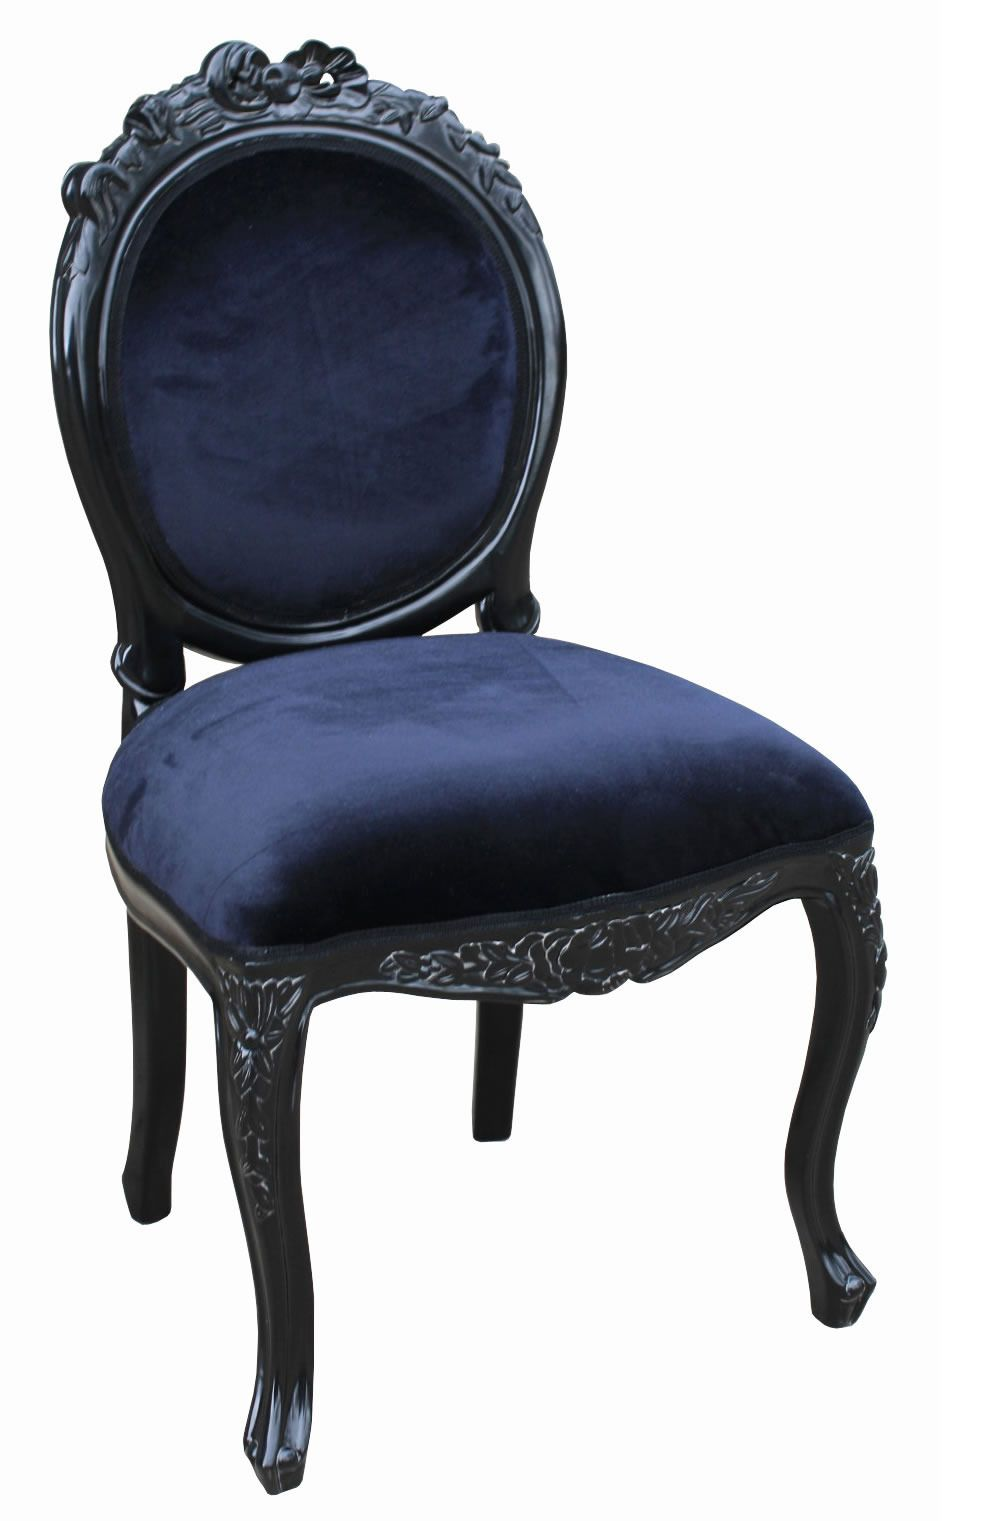 French Moulin Noir Dining chair  sc 1 st  Pinterest & French Moulin Noir Dining chair | French Moulin Noir Collection ...